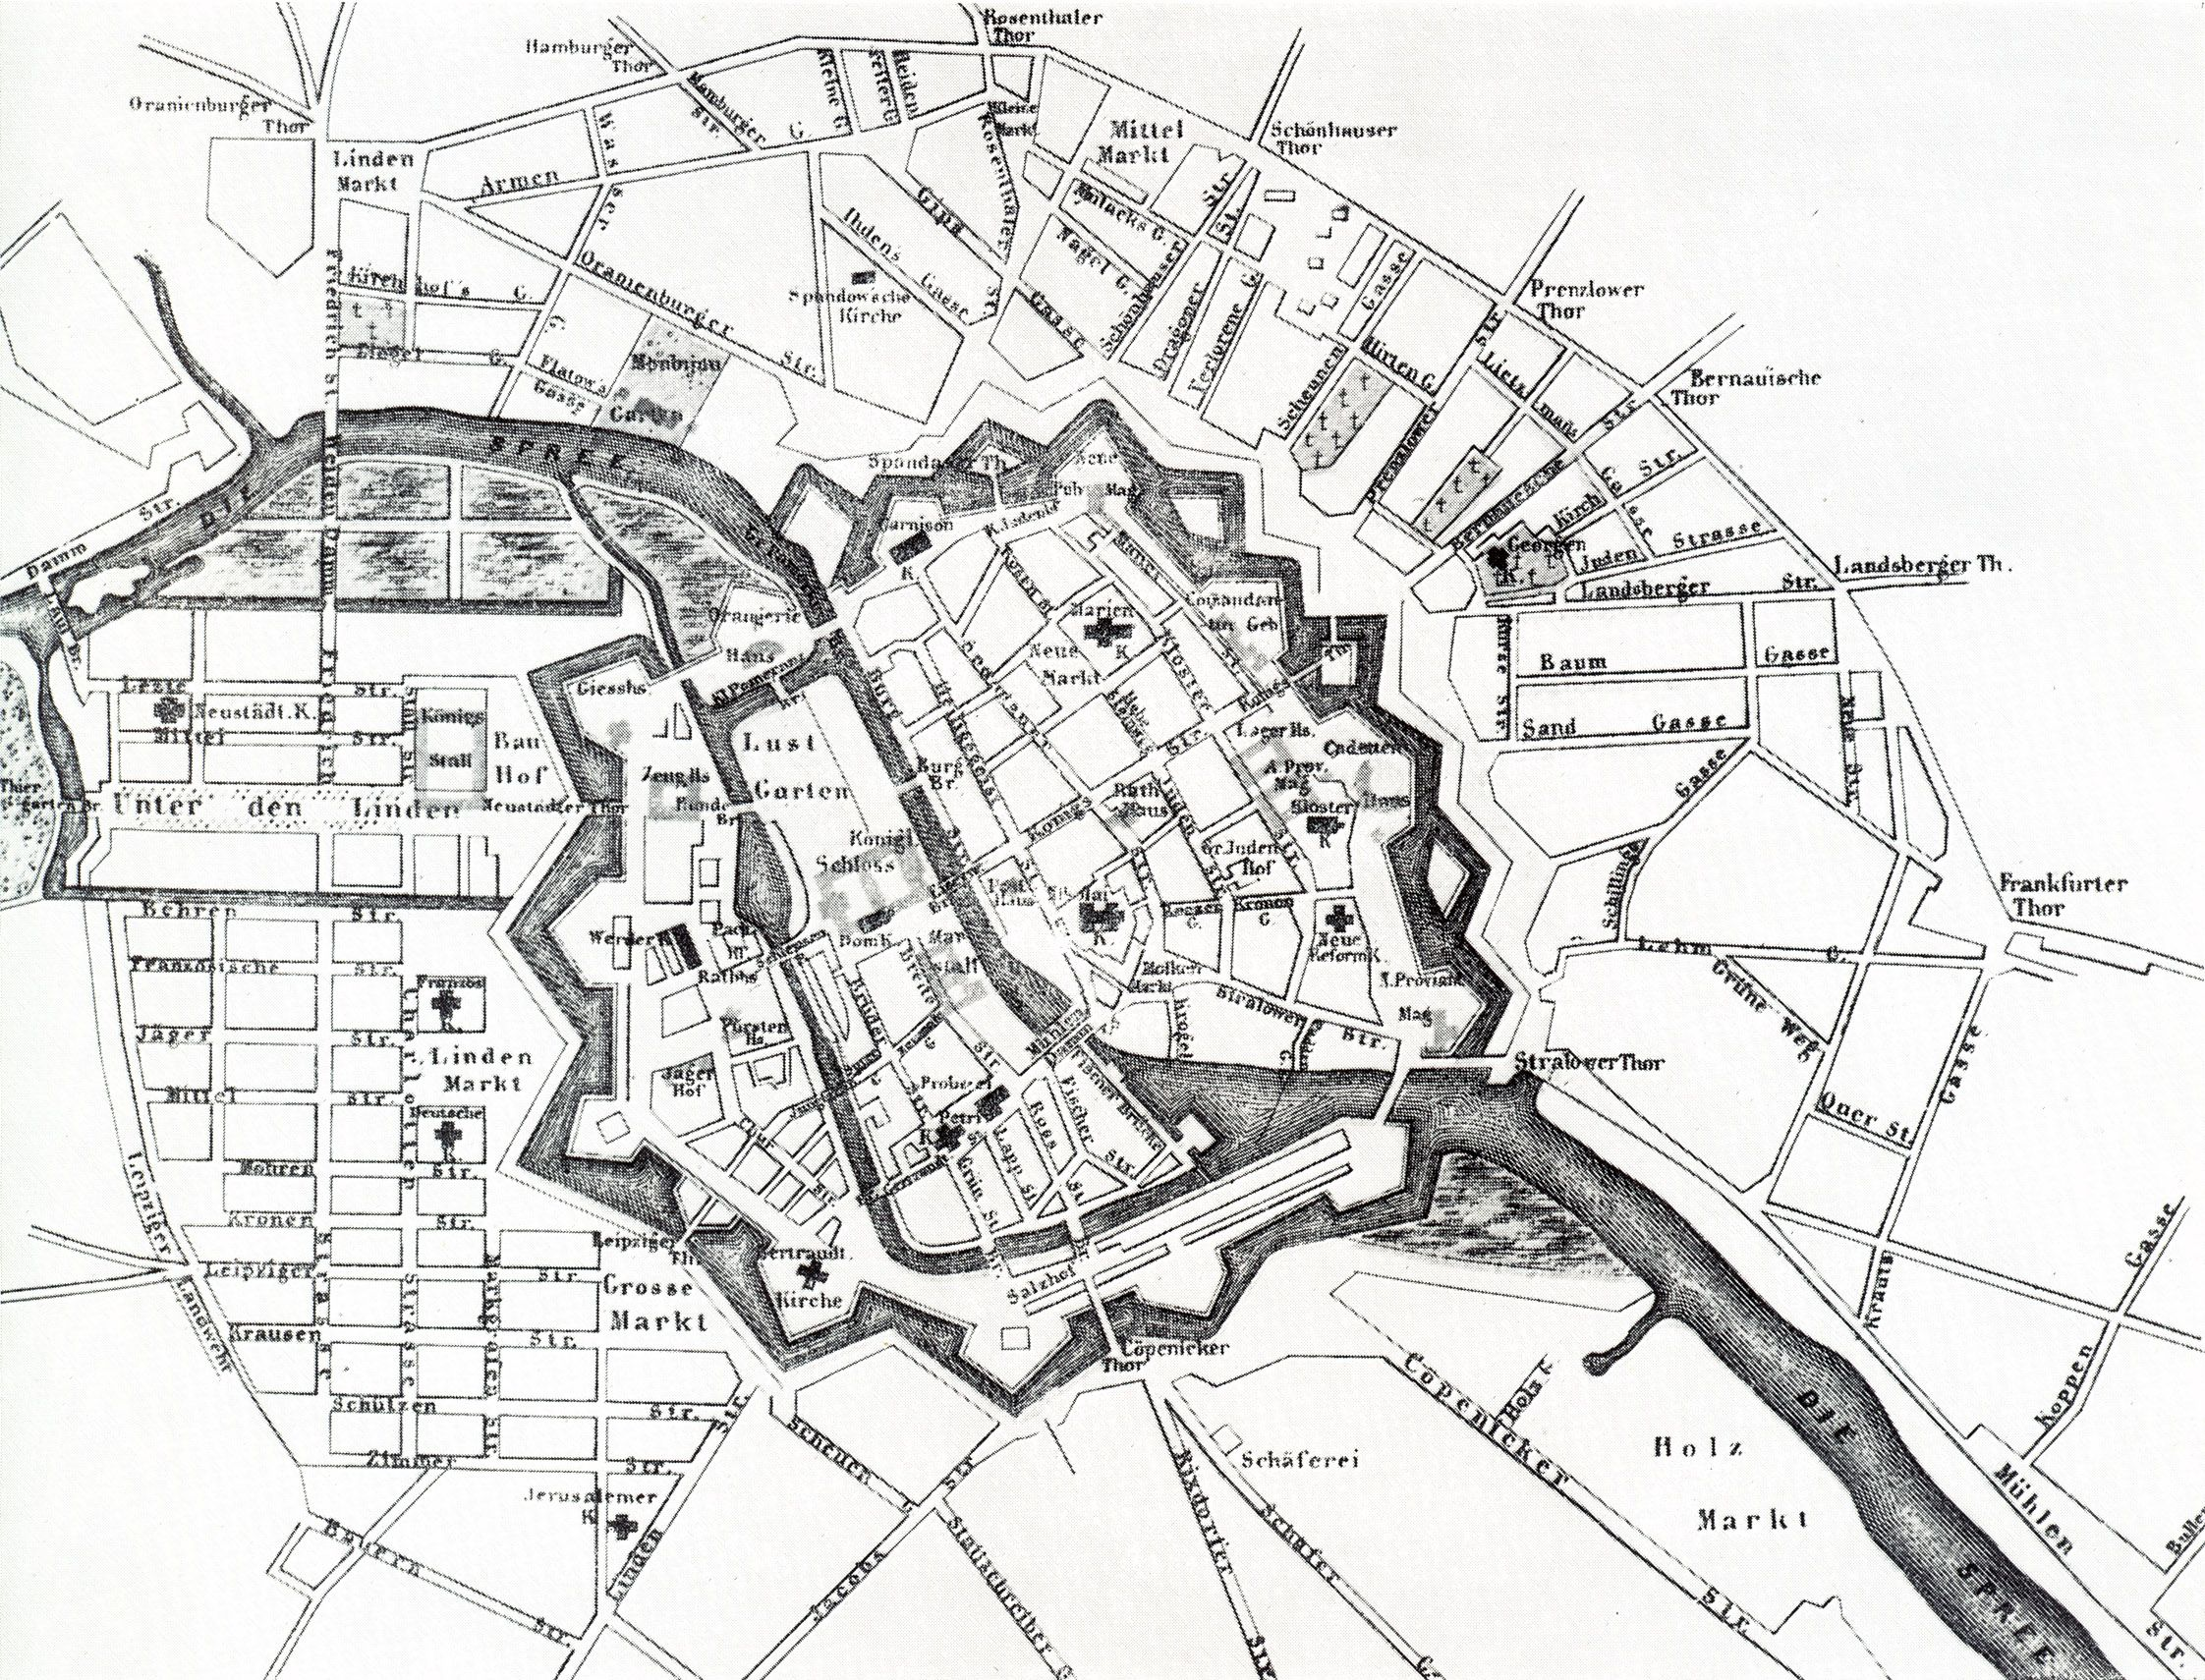 Berlin A Map Of 1737 The Fortified Medieval City Has Been Extended By Two Planned Suburbs Dorotheenstadt Immediately To The South Of T Berlin Map Antique Maps